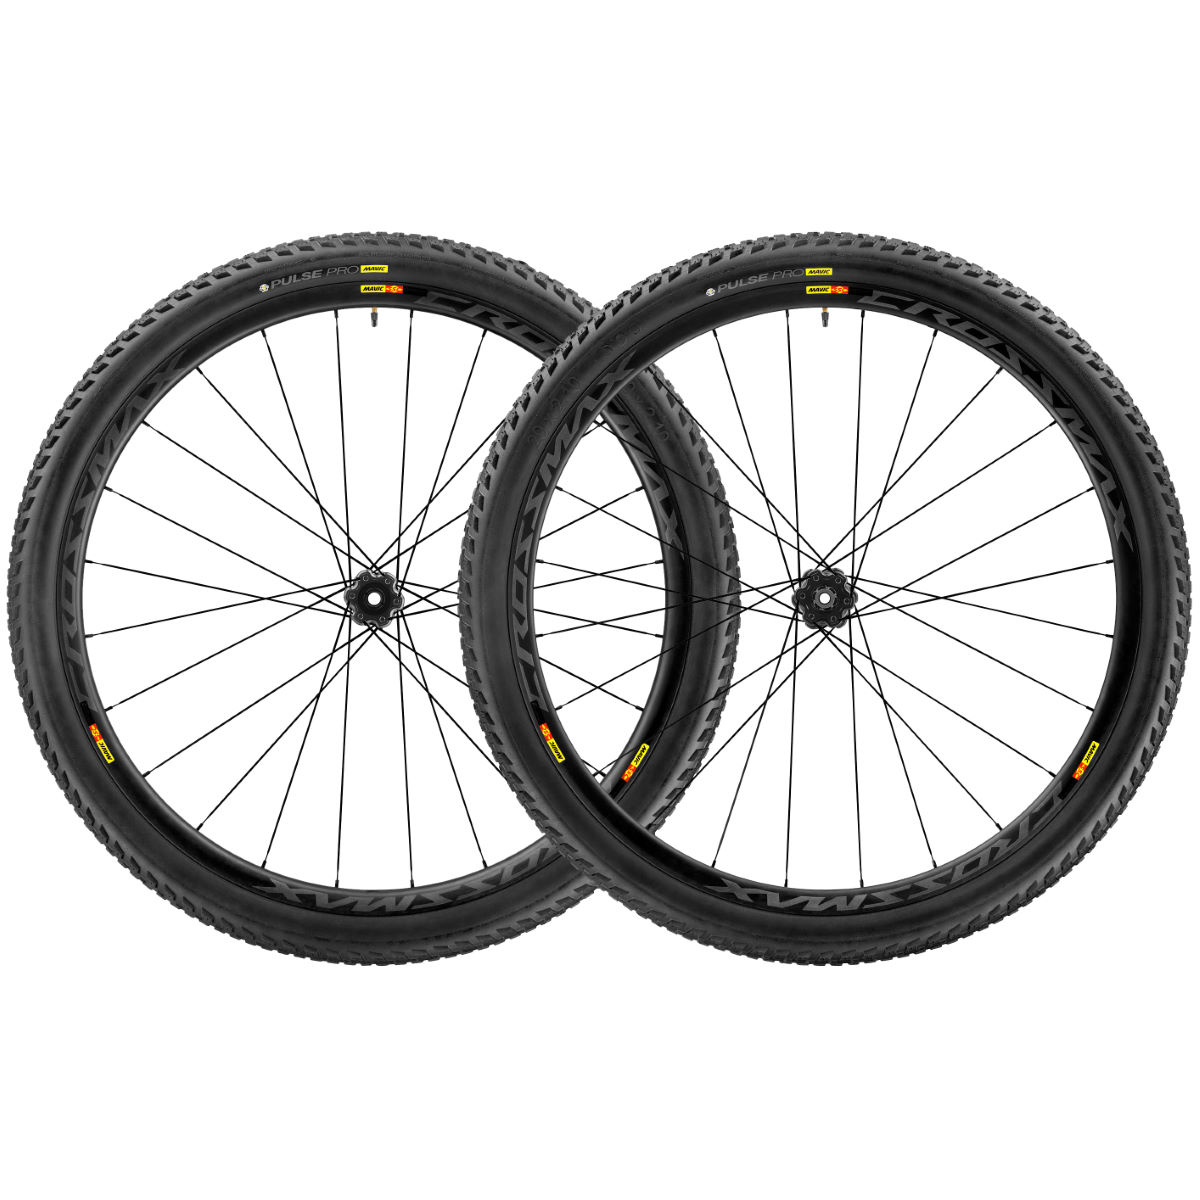 "Wheel set Mavic Crossmax Pro Carbon 29 ""(WTS, XD) - Competition wheels"